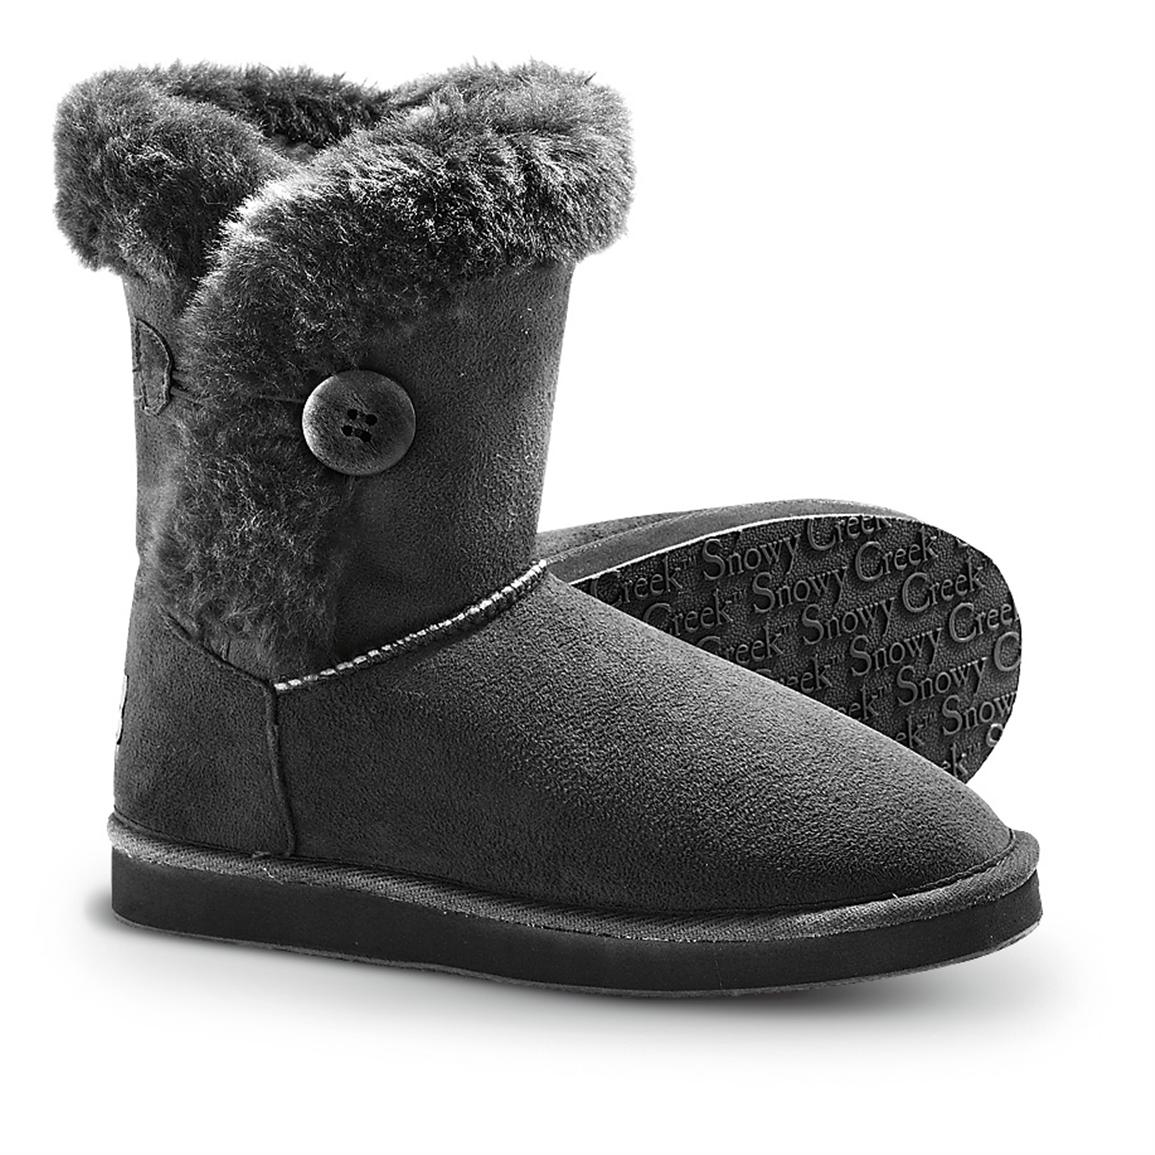 Black Winter Boots For Women cNKsCWR2